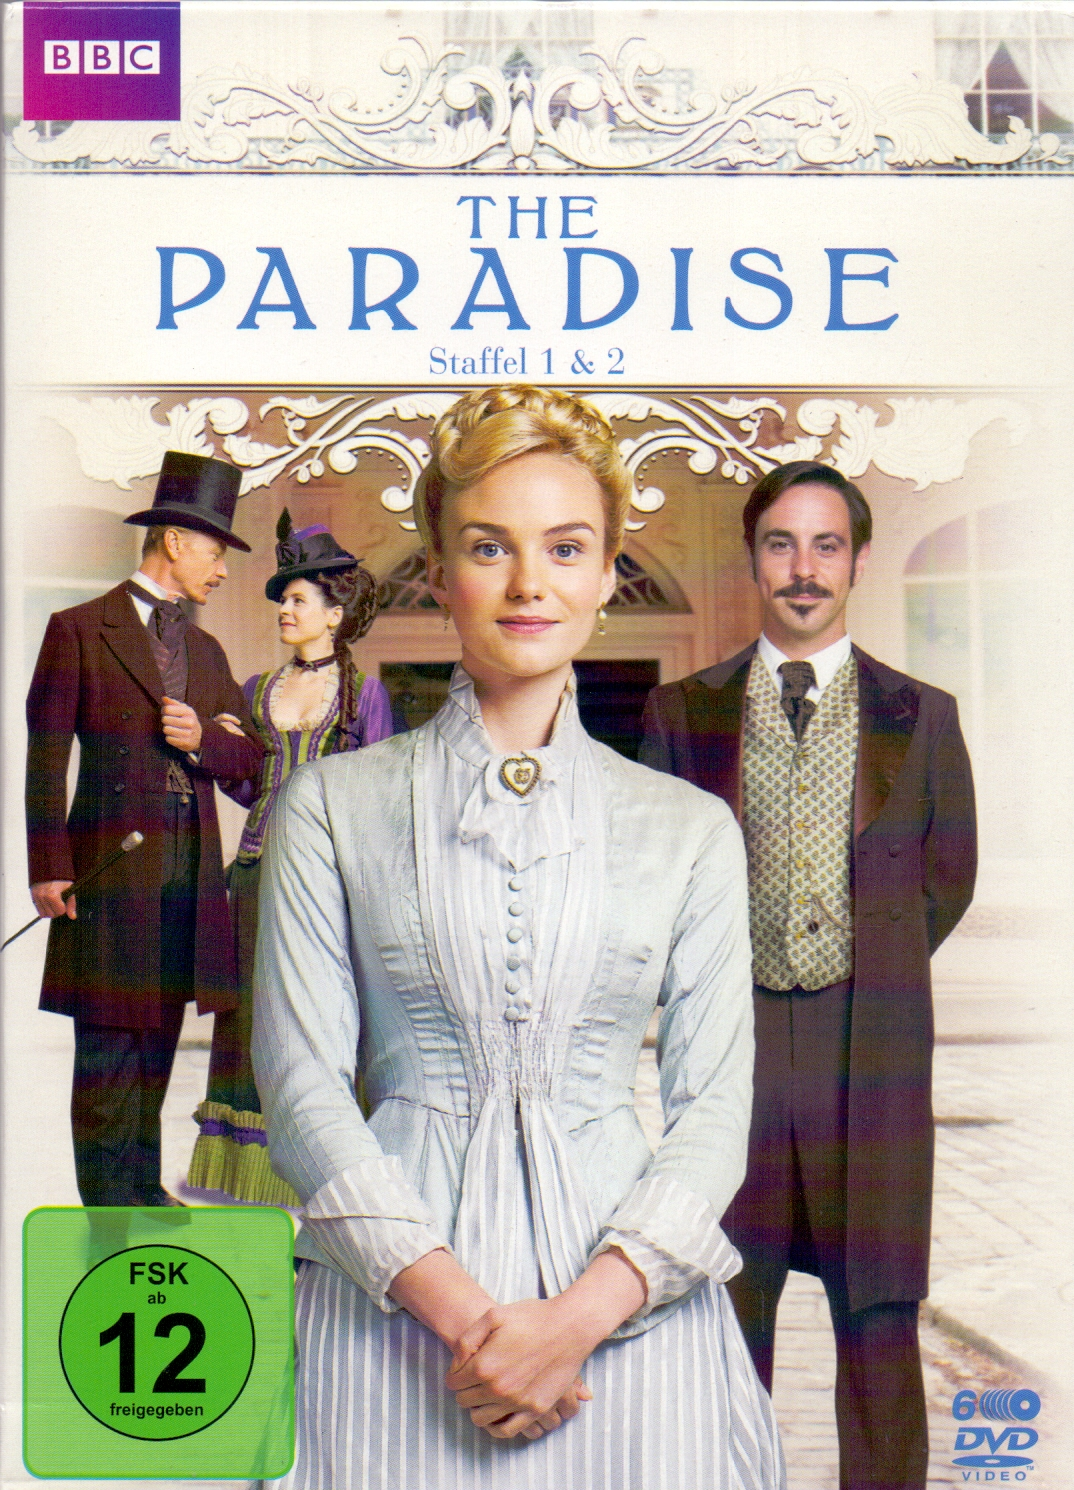 The Paradise: Staffel 1 & 2 [6 DVDs]